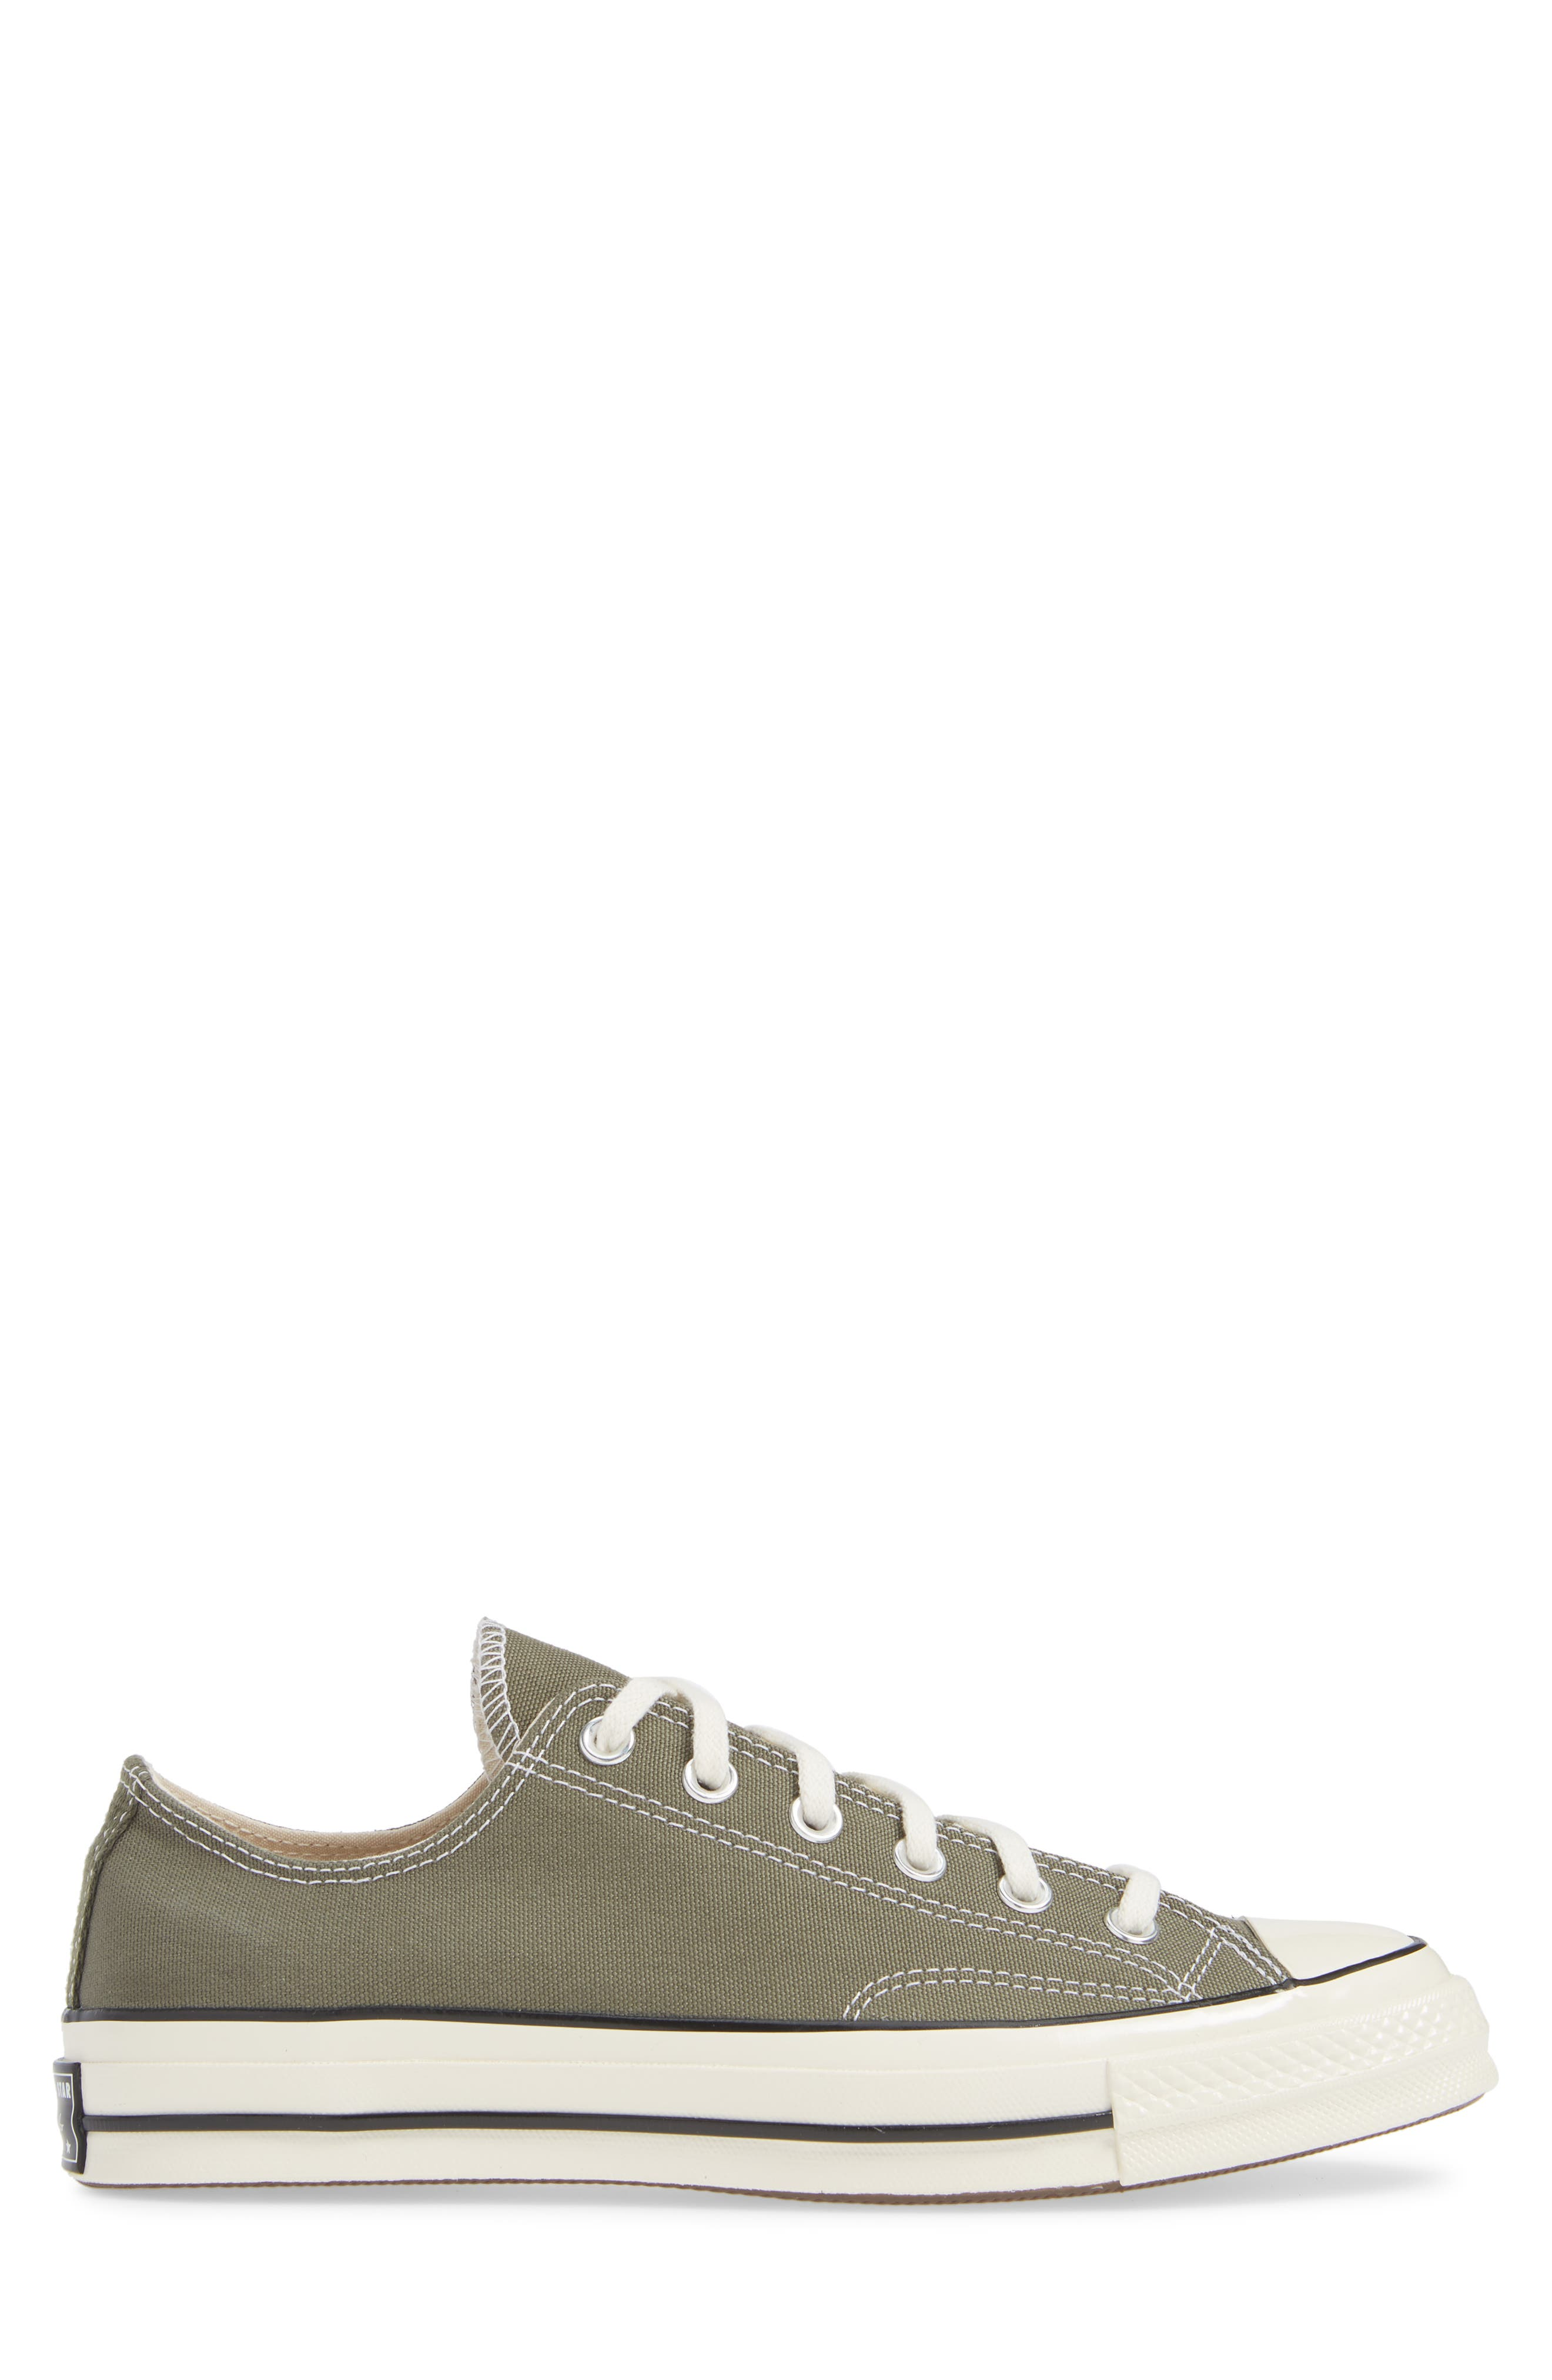 Chuck Taylor<sup>®</sup> All Star<sup>®</sup> '70 Low Sneaker,                             Alternate thumbnail 3, color,                             FIELD SURPLUS/ BLACK/ EGRET